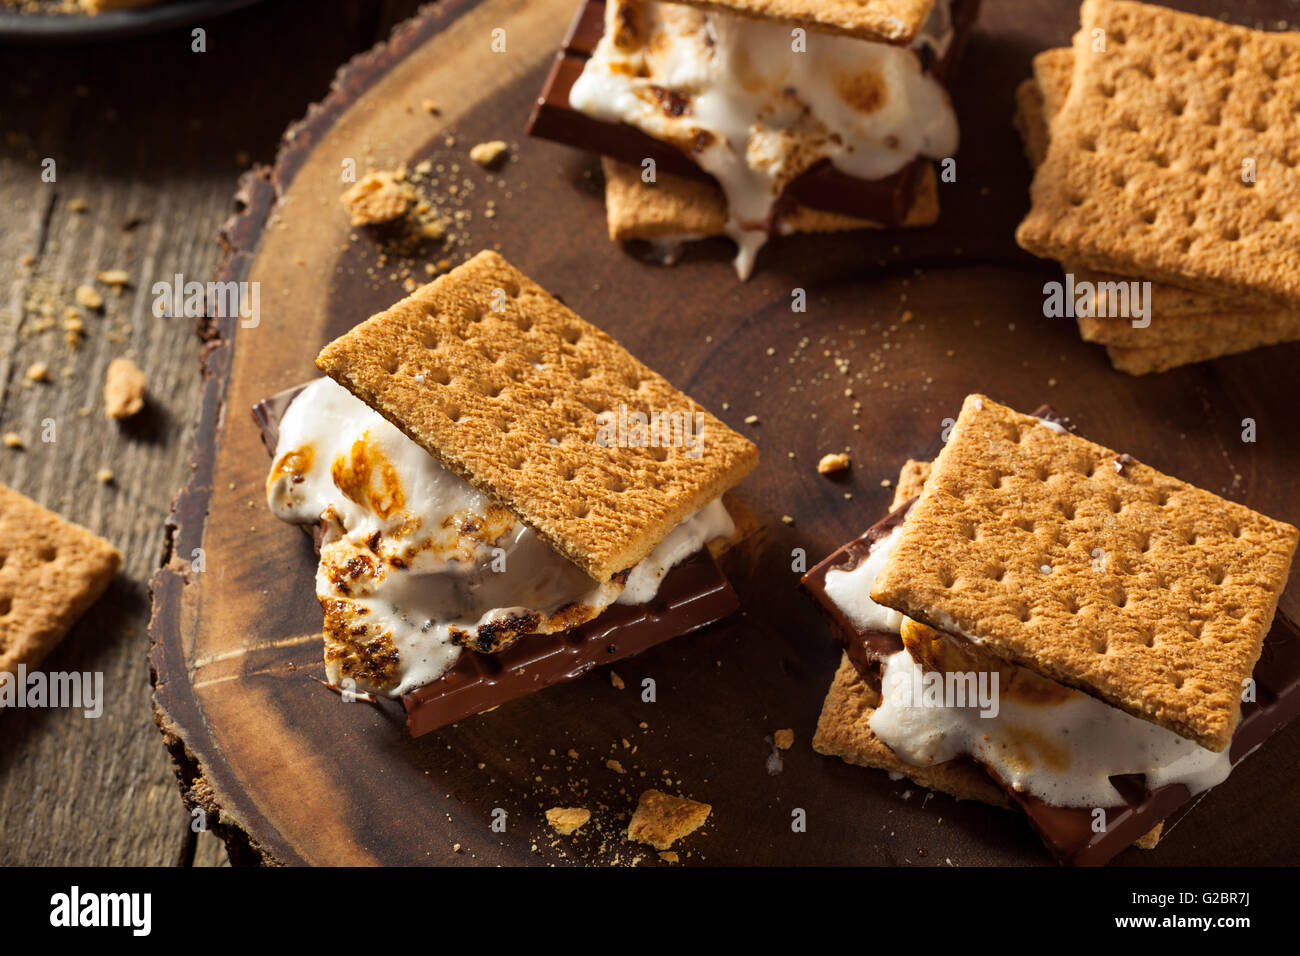 Homemade Gooey Marshmallow S'mores with Chocolate - Stock Image